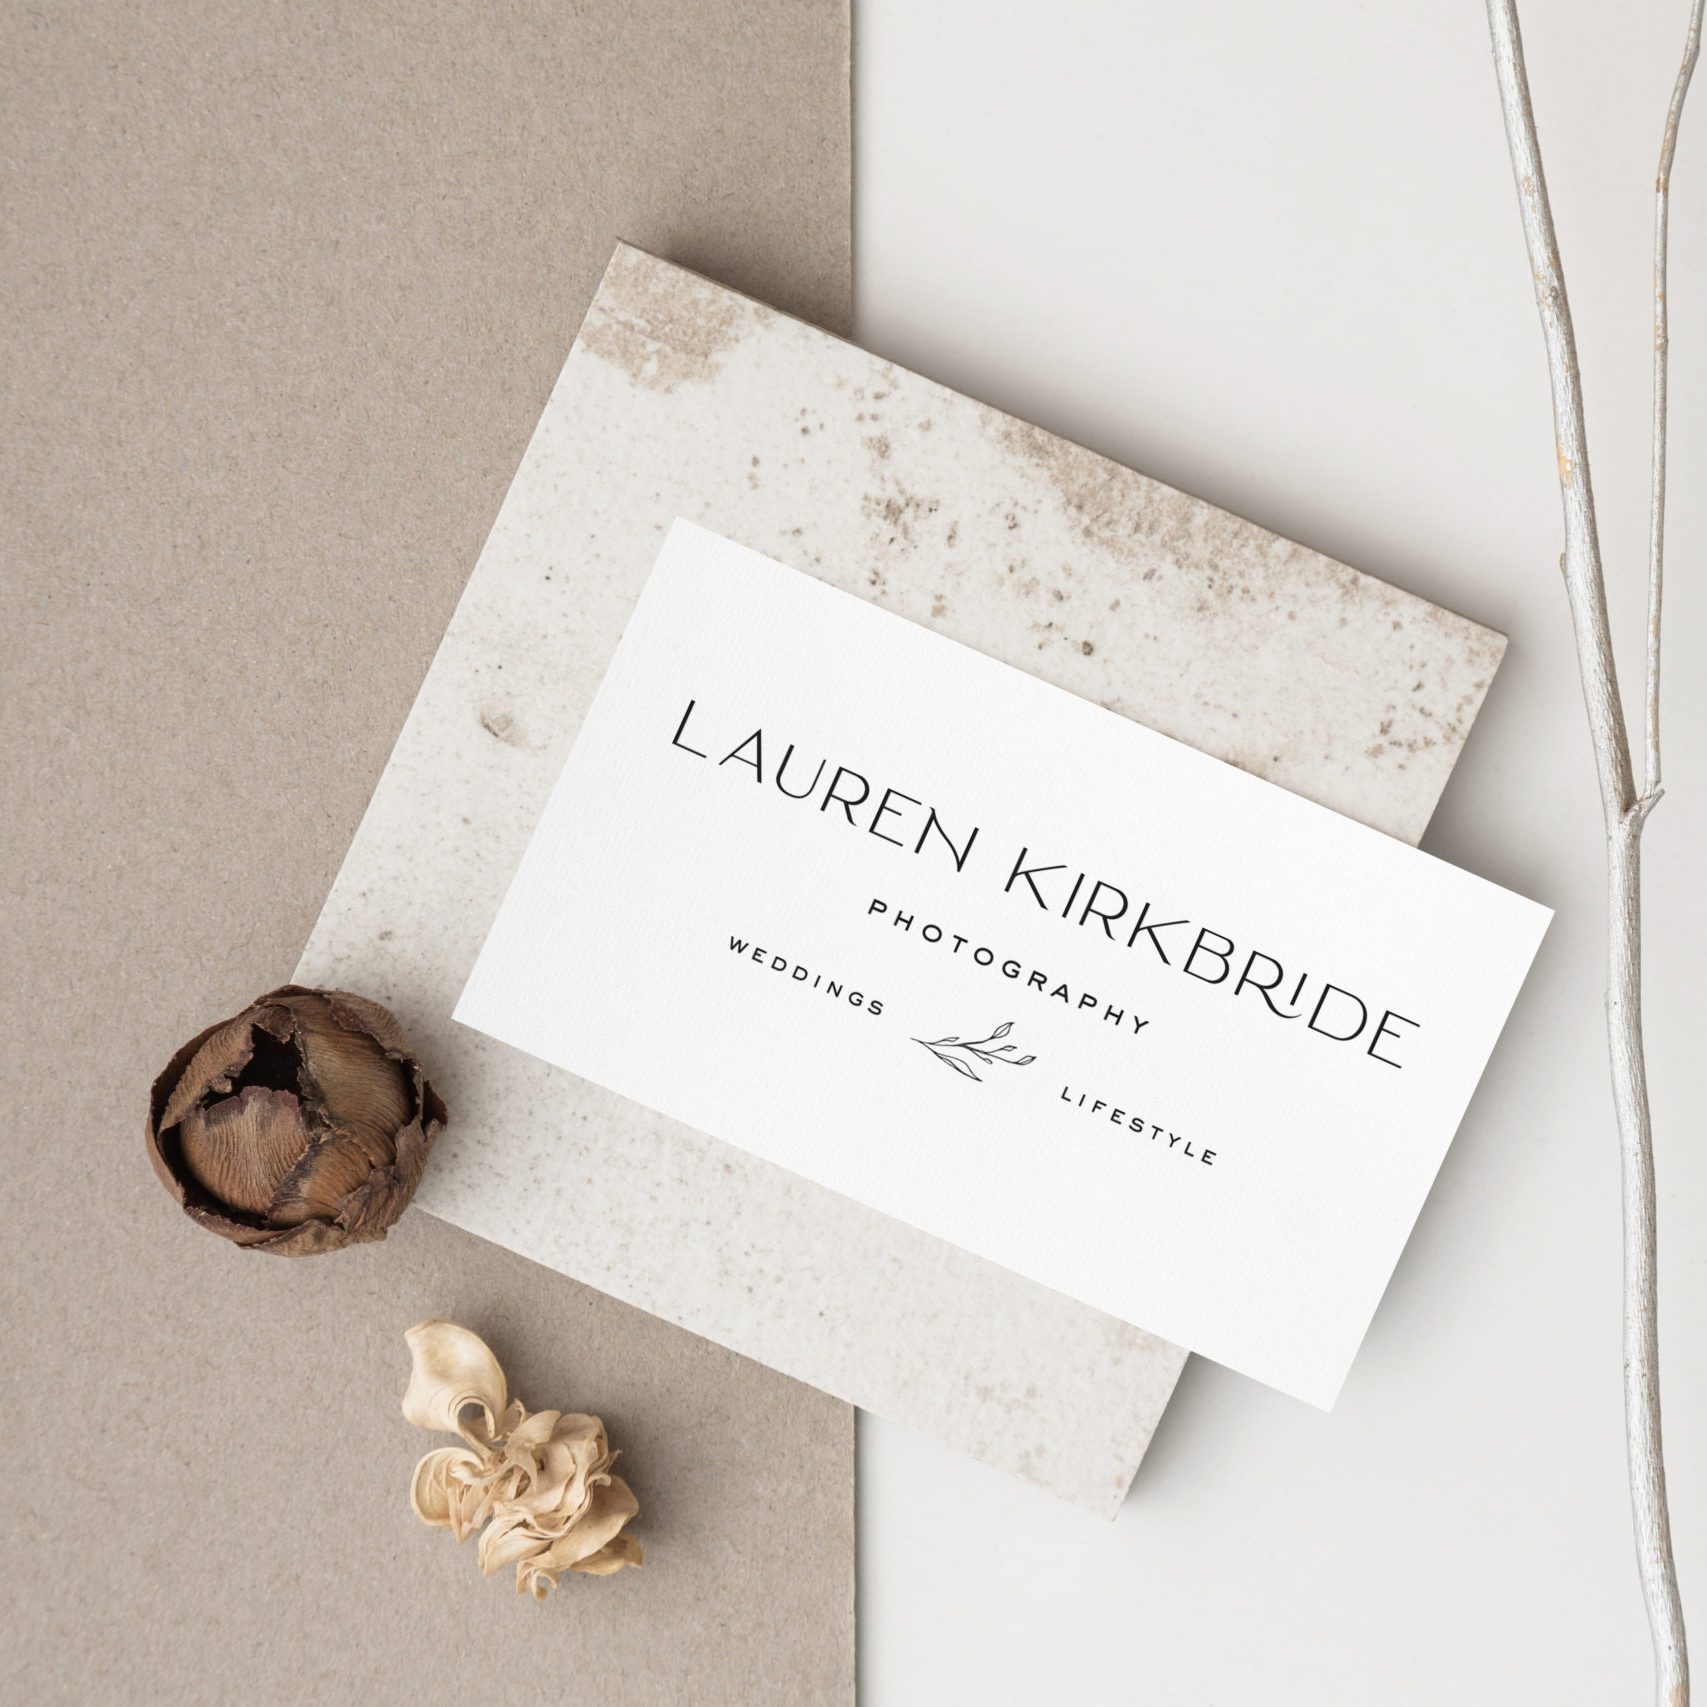 Lauren Kirkbride Photography - Custom Logo Design and Showit Website Design by With Grace and Gold - Photo - 12